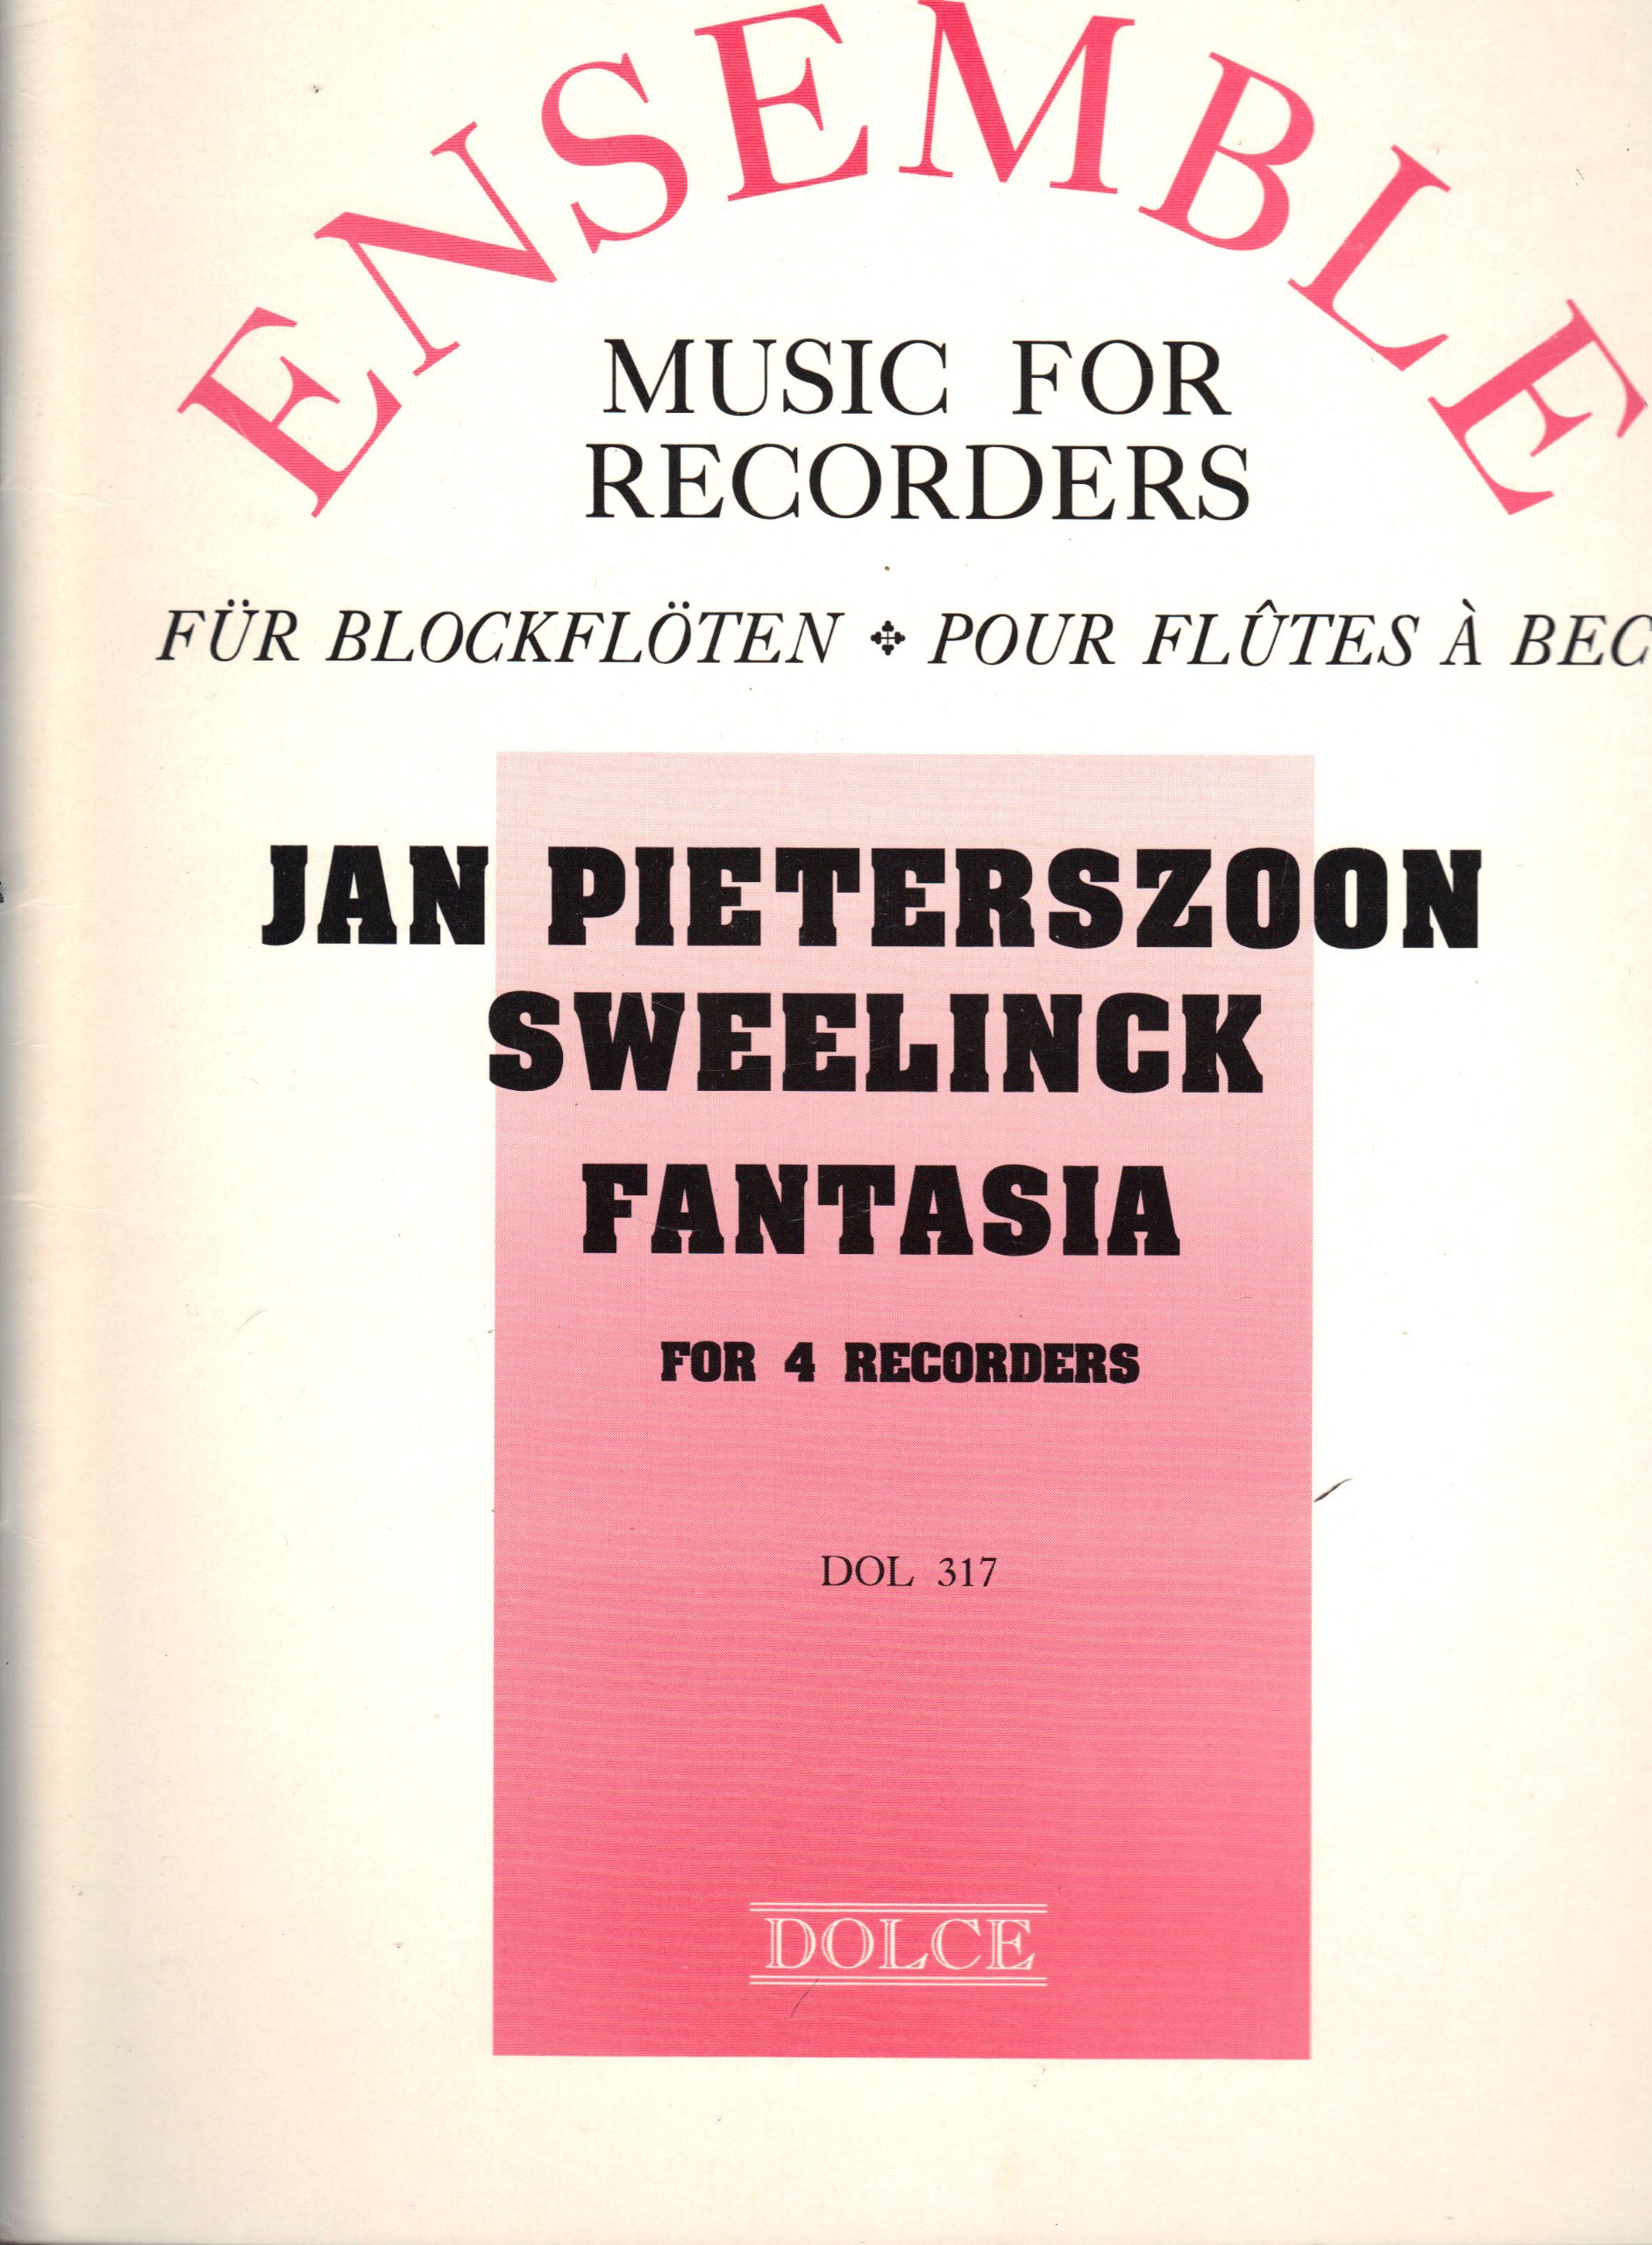 Ensemble: Music for Recorders (Jan Pieterszoon Sweelinck: Fantasia (For 4 Recorders), DOL 317)